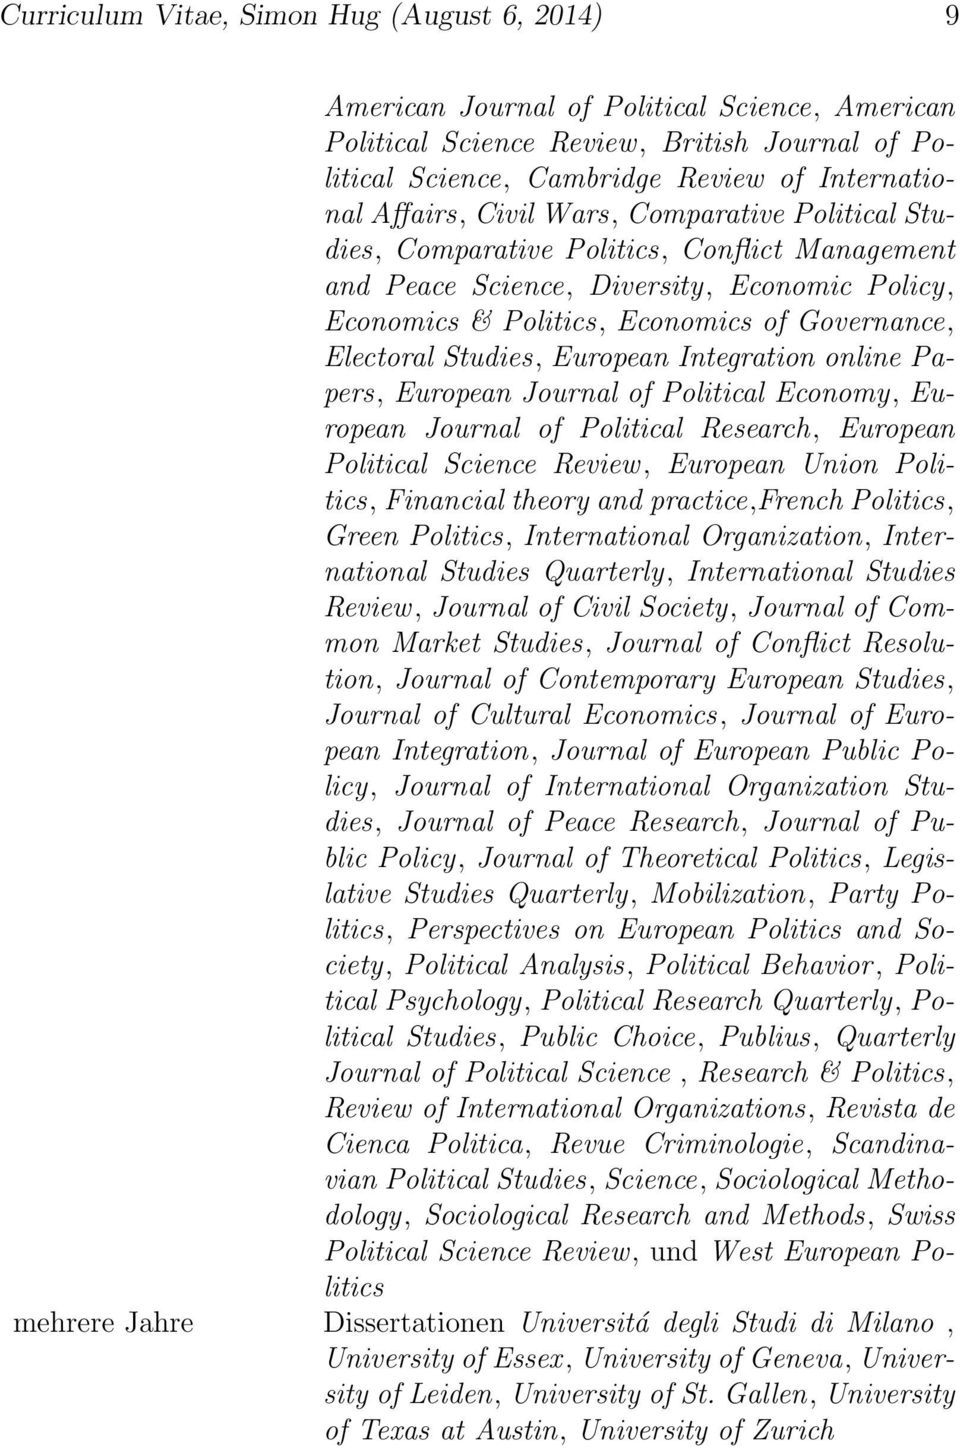 Studies, European Integration online Papers, European Journal of Political Economy, European Journal of Political Research, European Political Science Review, European Union Politics, Financial